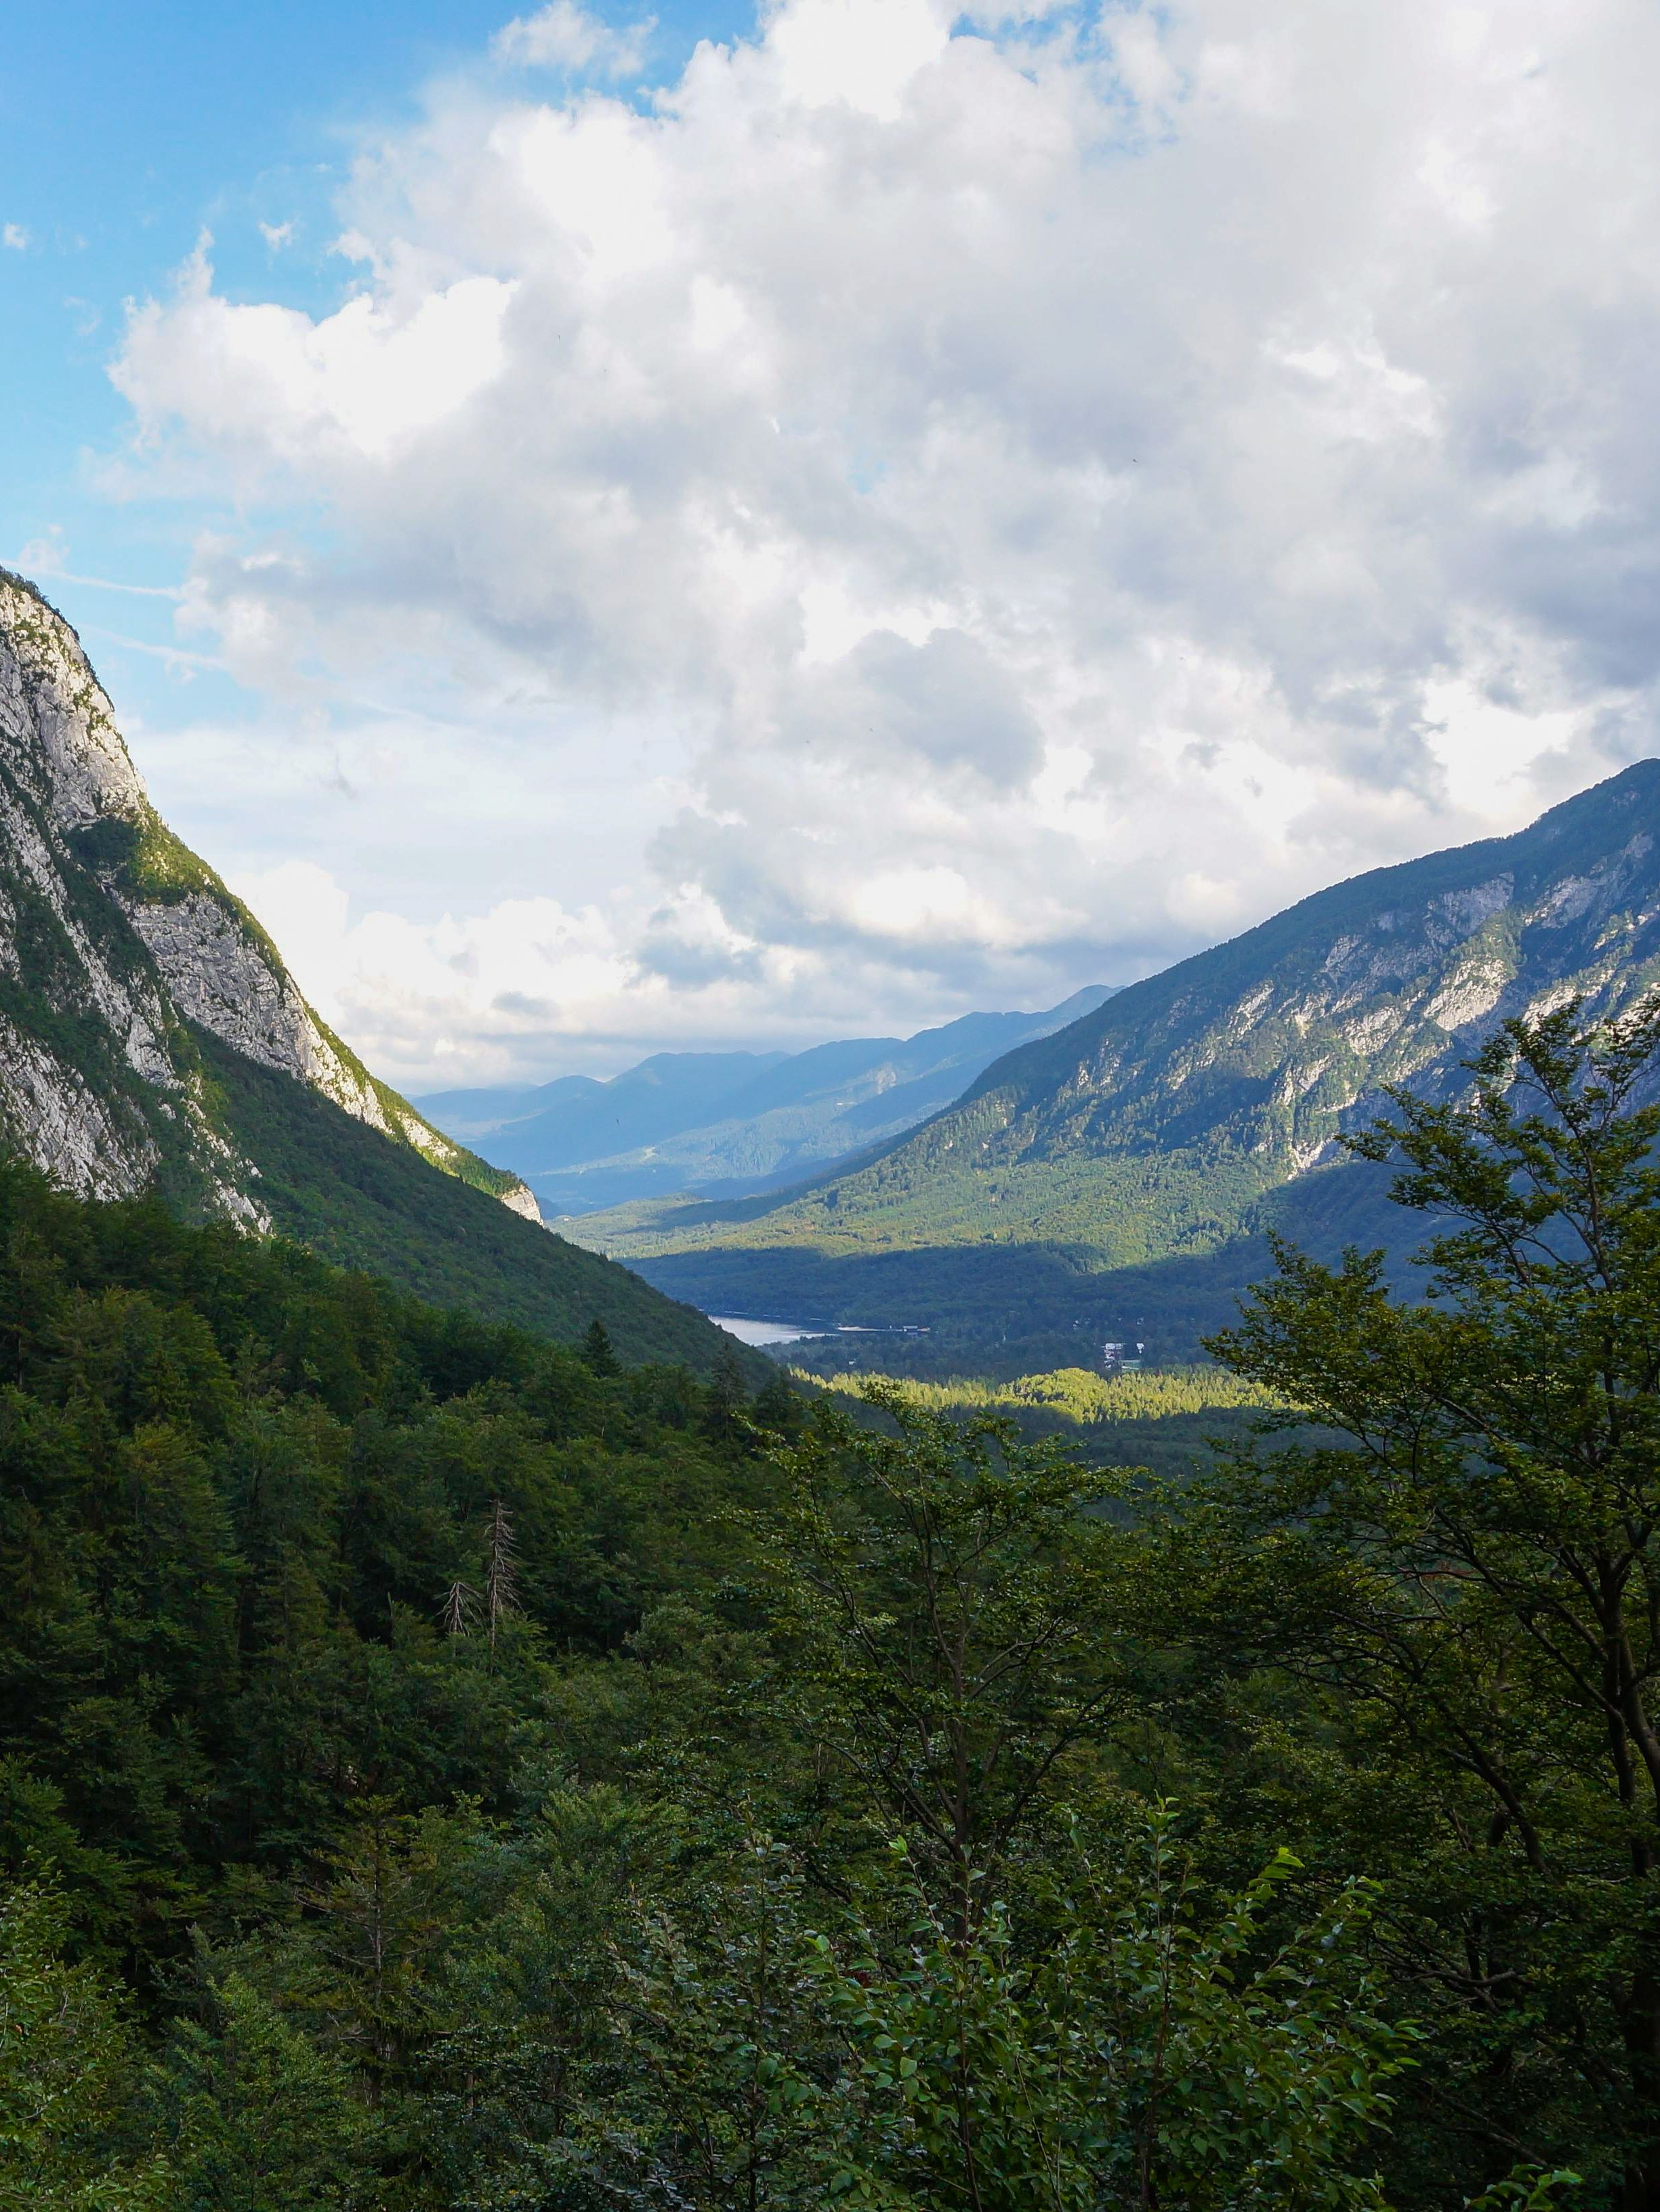 Home To Sloveniau0027s Largest Lake And Tallest Mountain, Bohinj Is An Amazing  Place. Just Check Out These 8 Highlights Of Bohinj And Start Packing Your  Bags!